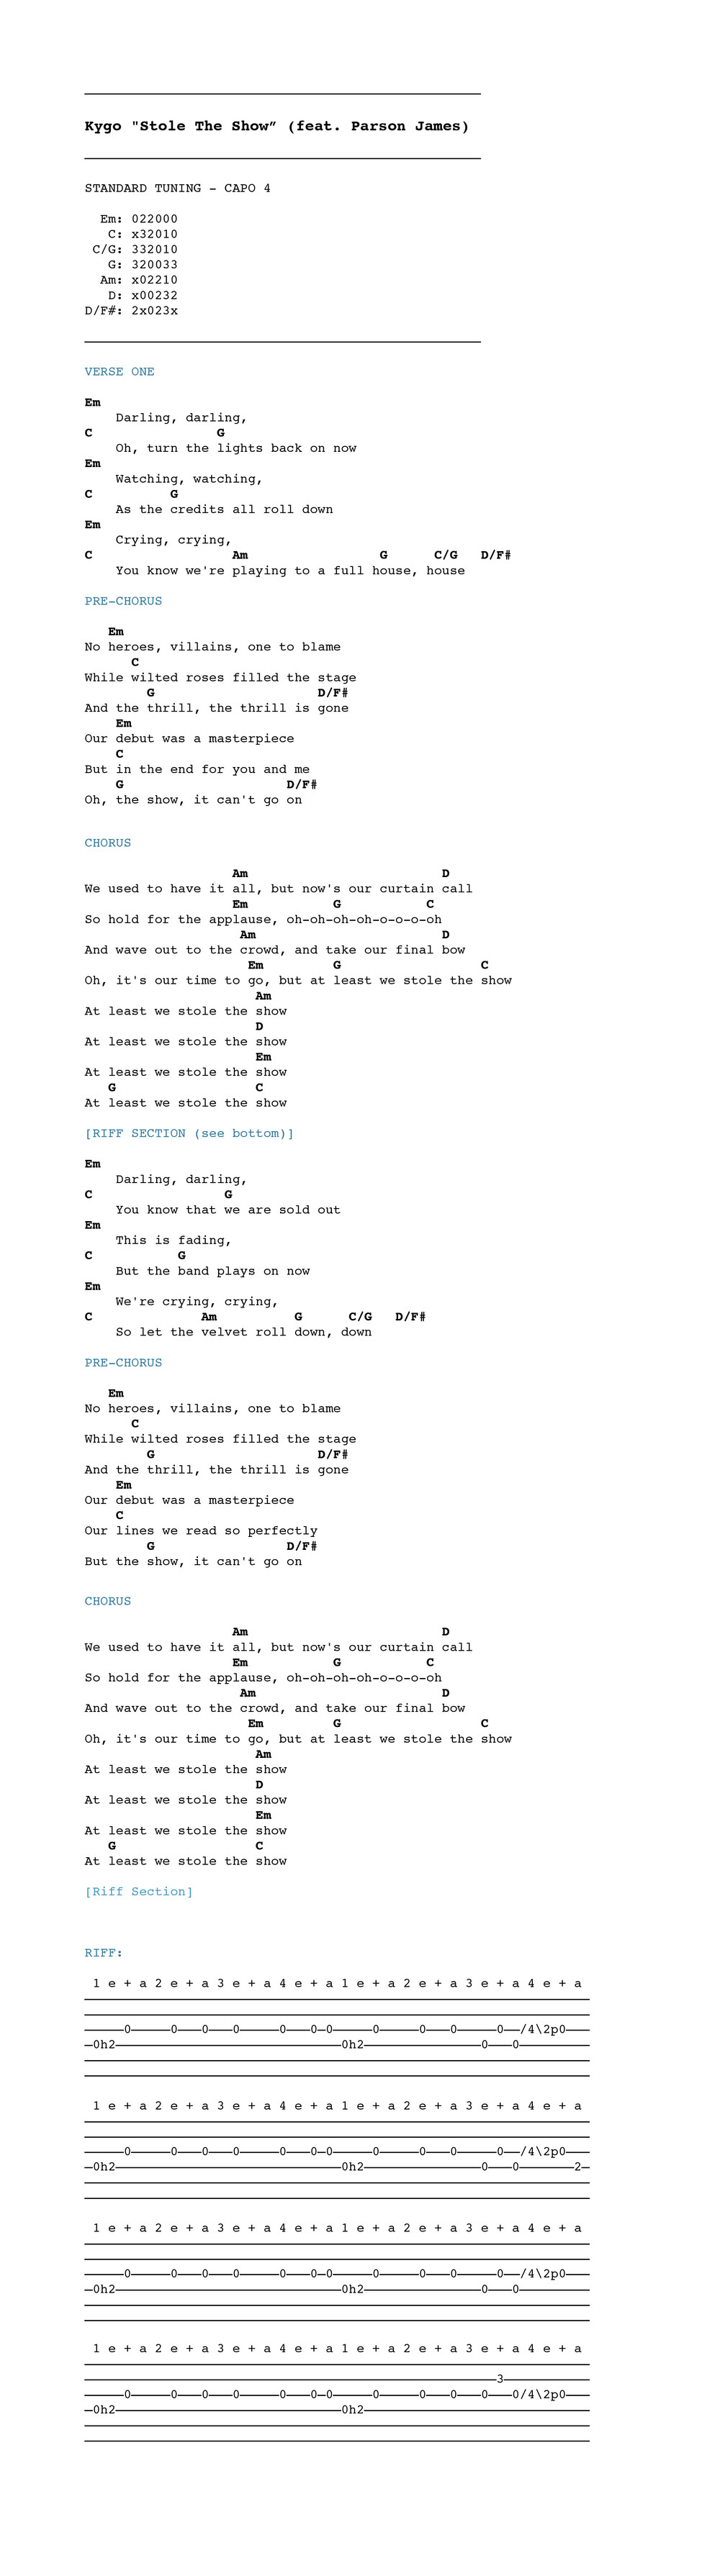 Kygo stole the show feat parson james chordistry download the chord chart here hexwebz Choice Image